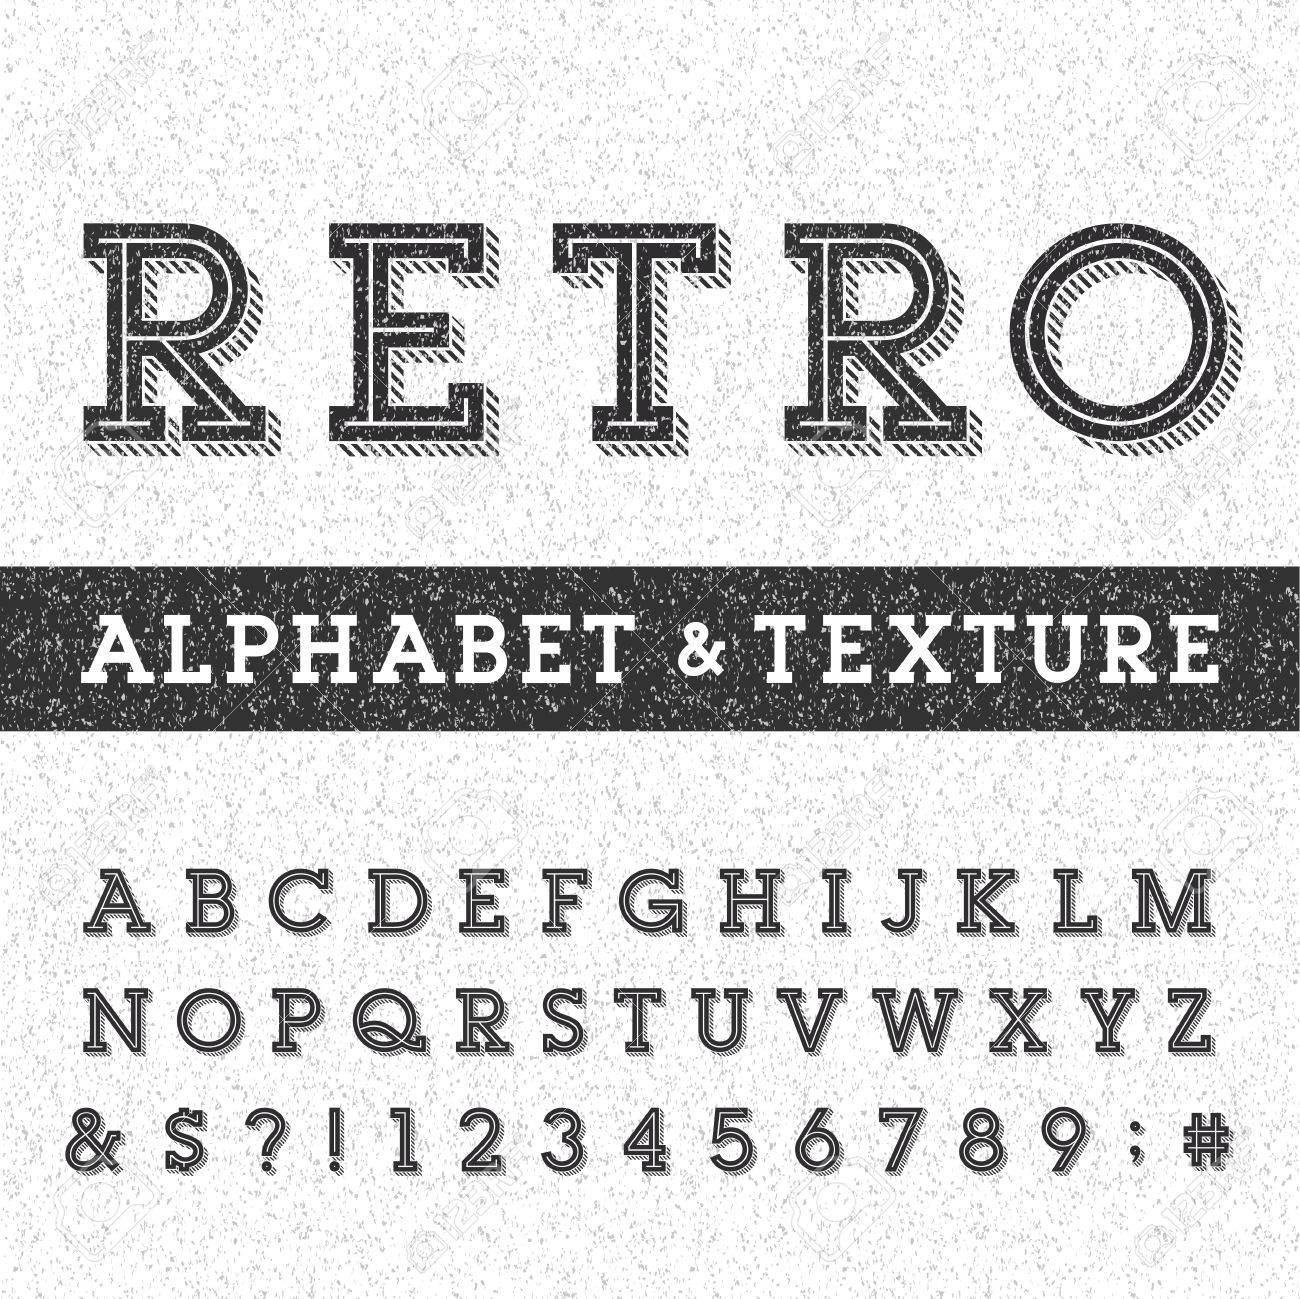 Retro alphabet vector font with distressed overlay texture - 43963501